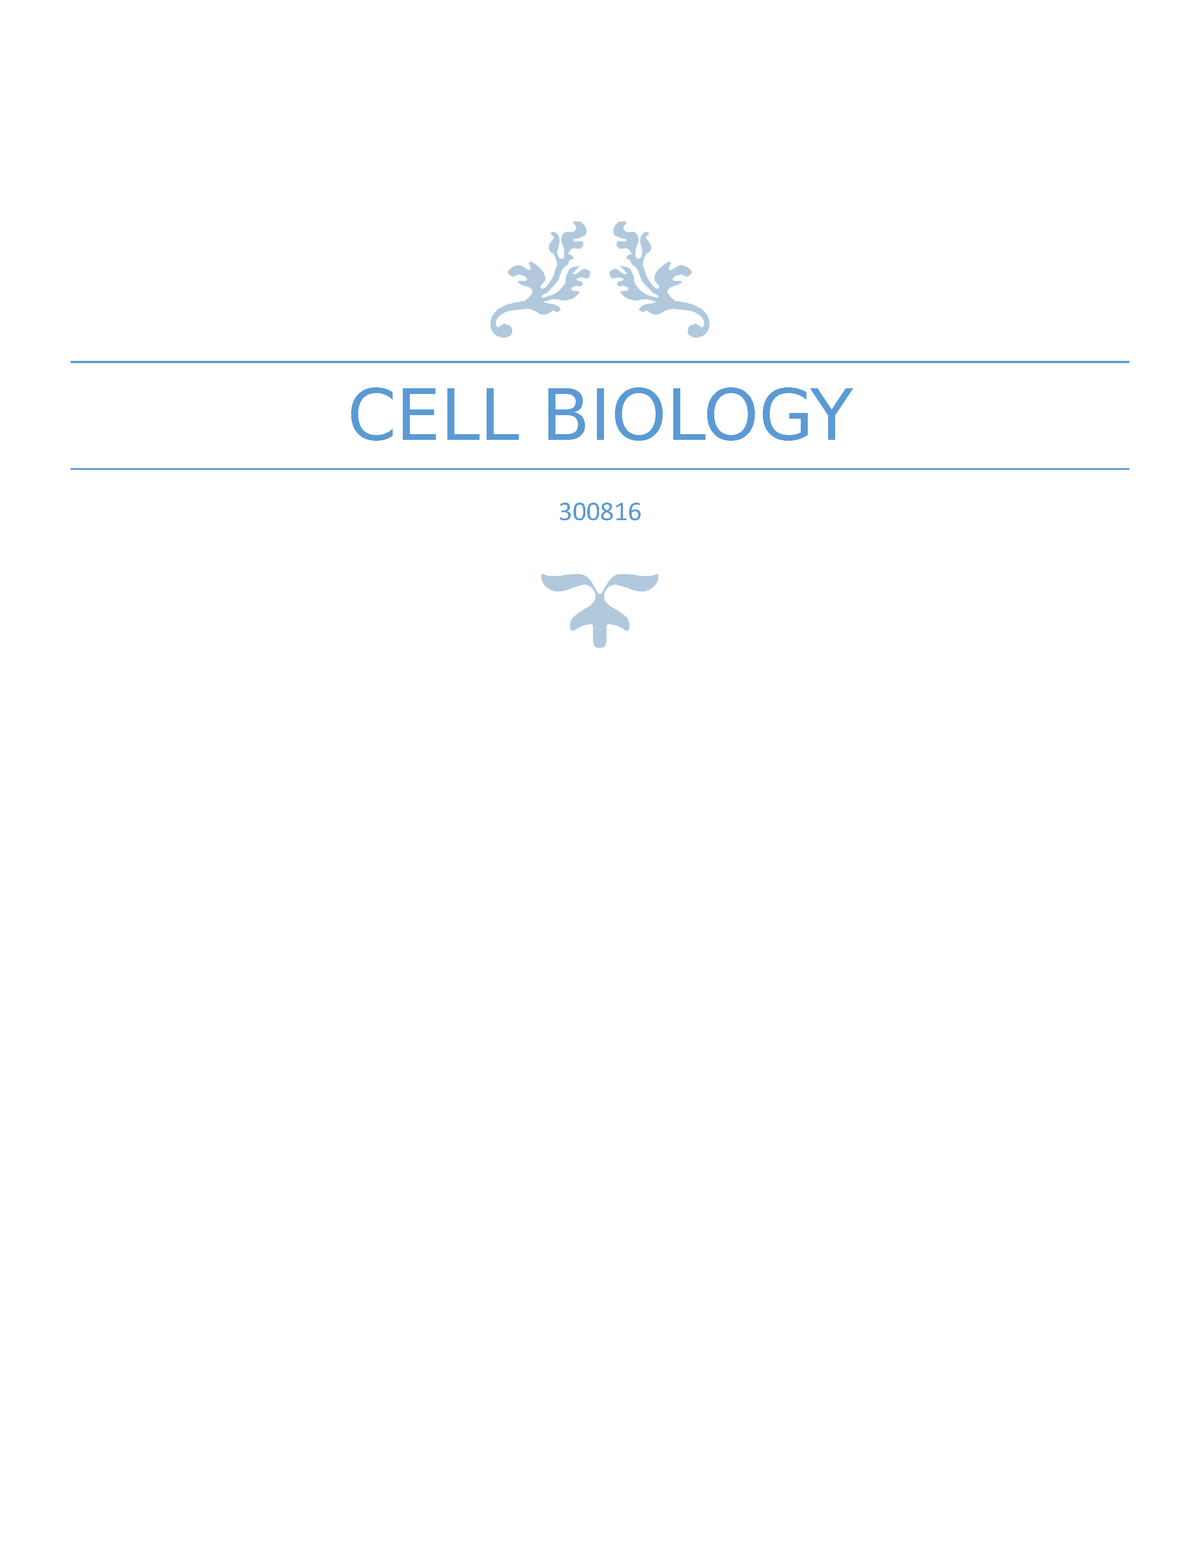 Cell Biology Lecture Study Notes - Lecture notes, lectures 1